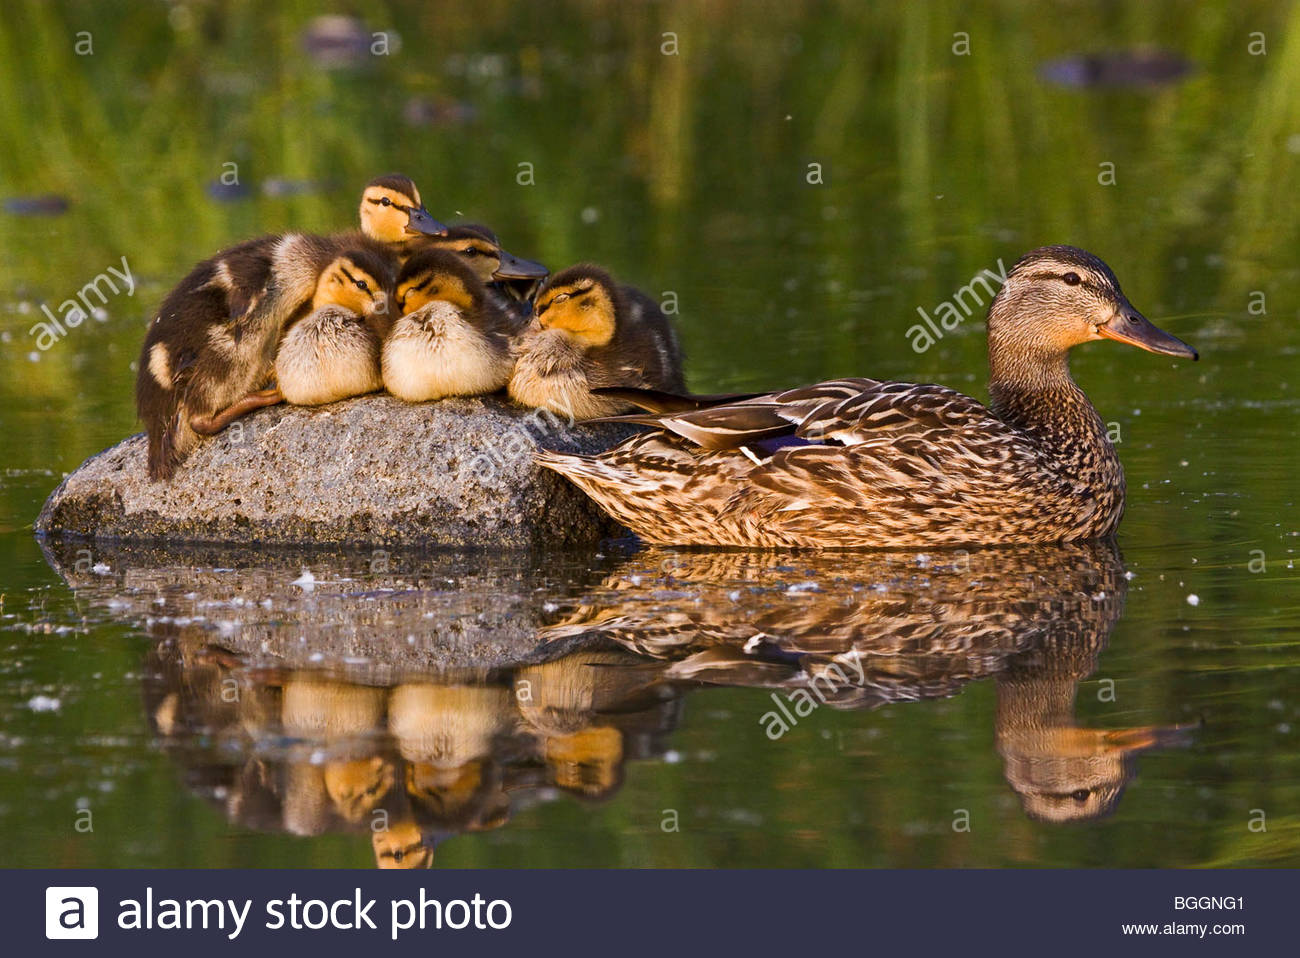 Alaska. Mallard hen (Anas platyrhynchos) and ducklings resting on a rock in Cheney lake, Anchorage. - Stock Image